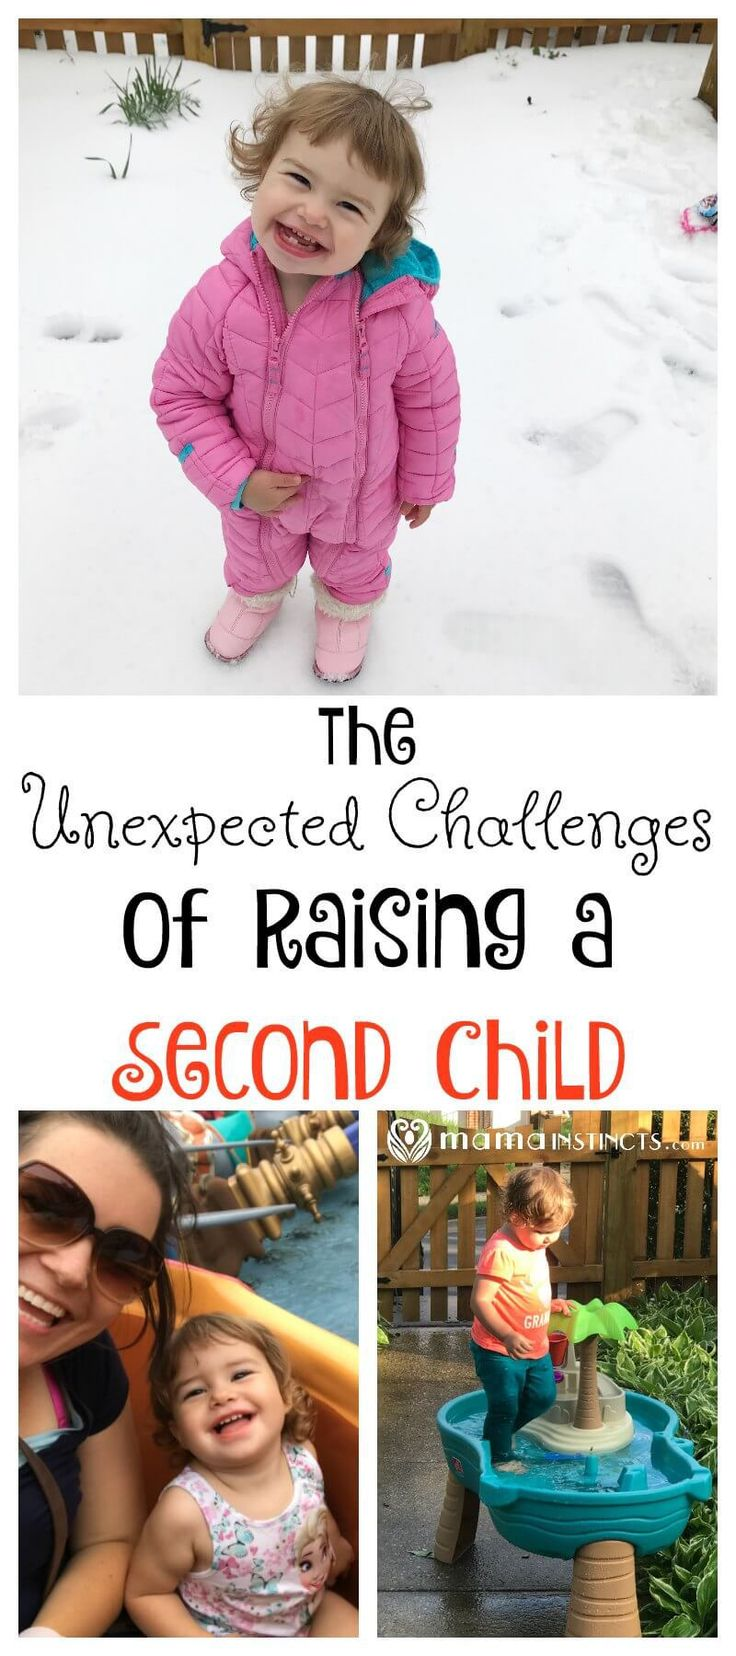 The Challenge of Children with Special Needs